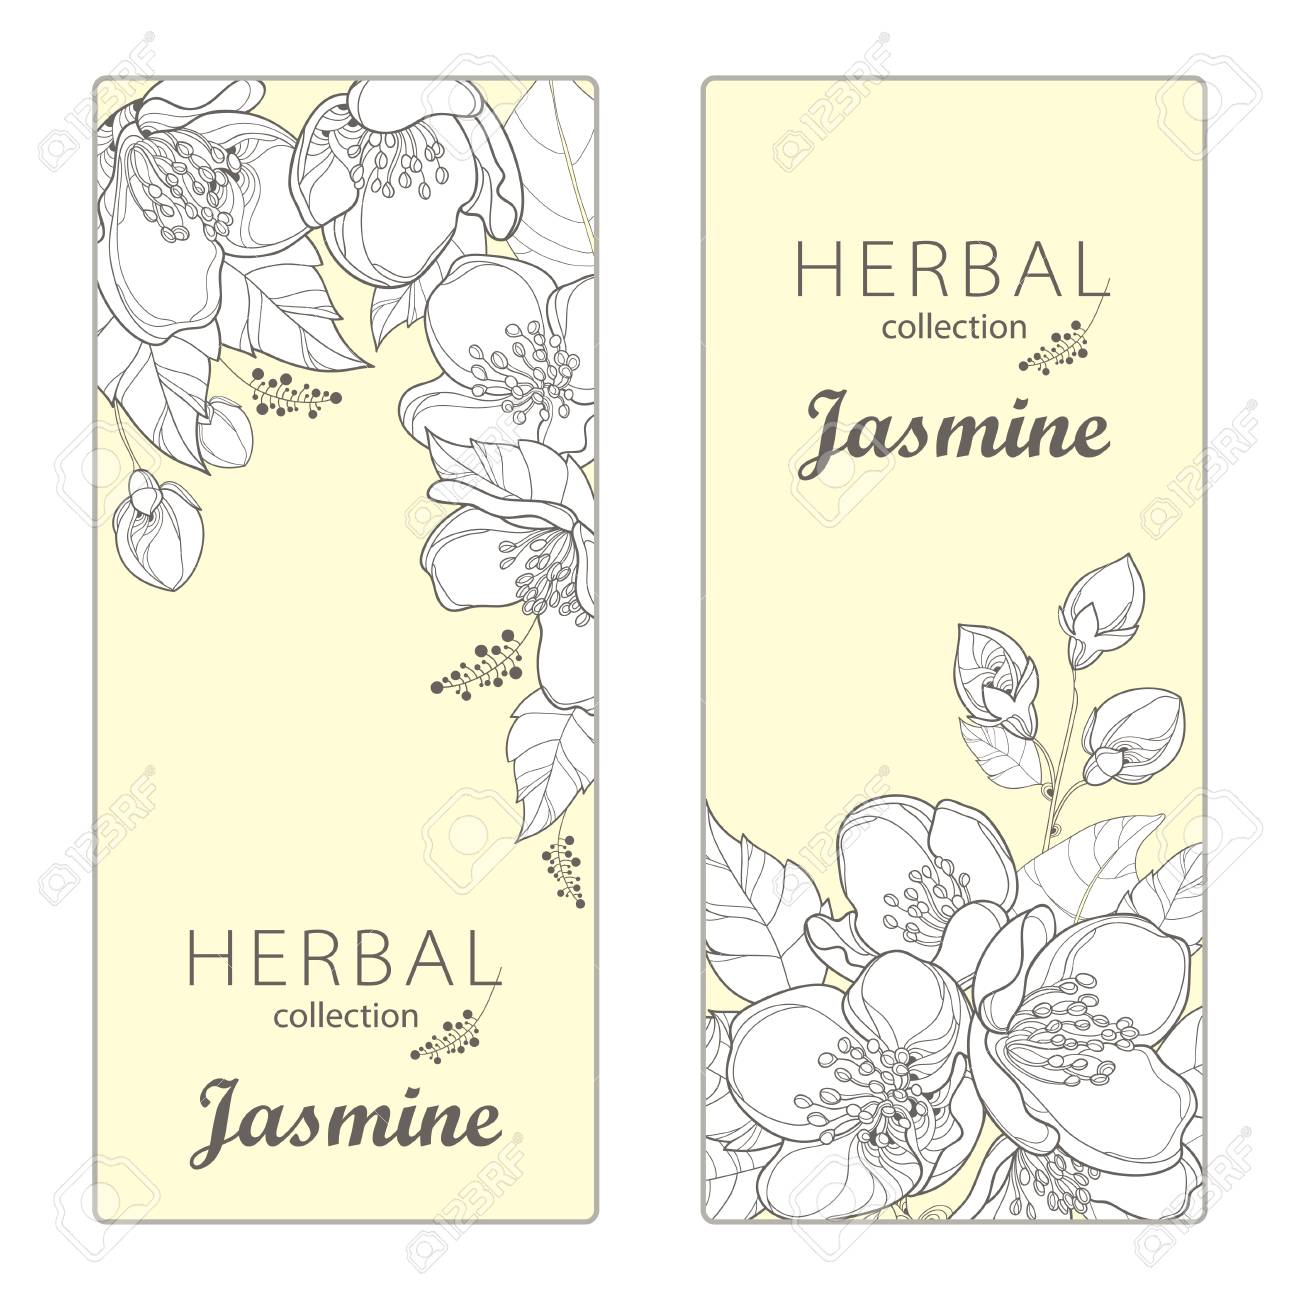 Vertical Templates With Outline Jasmine Flowers Bud And Leaves